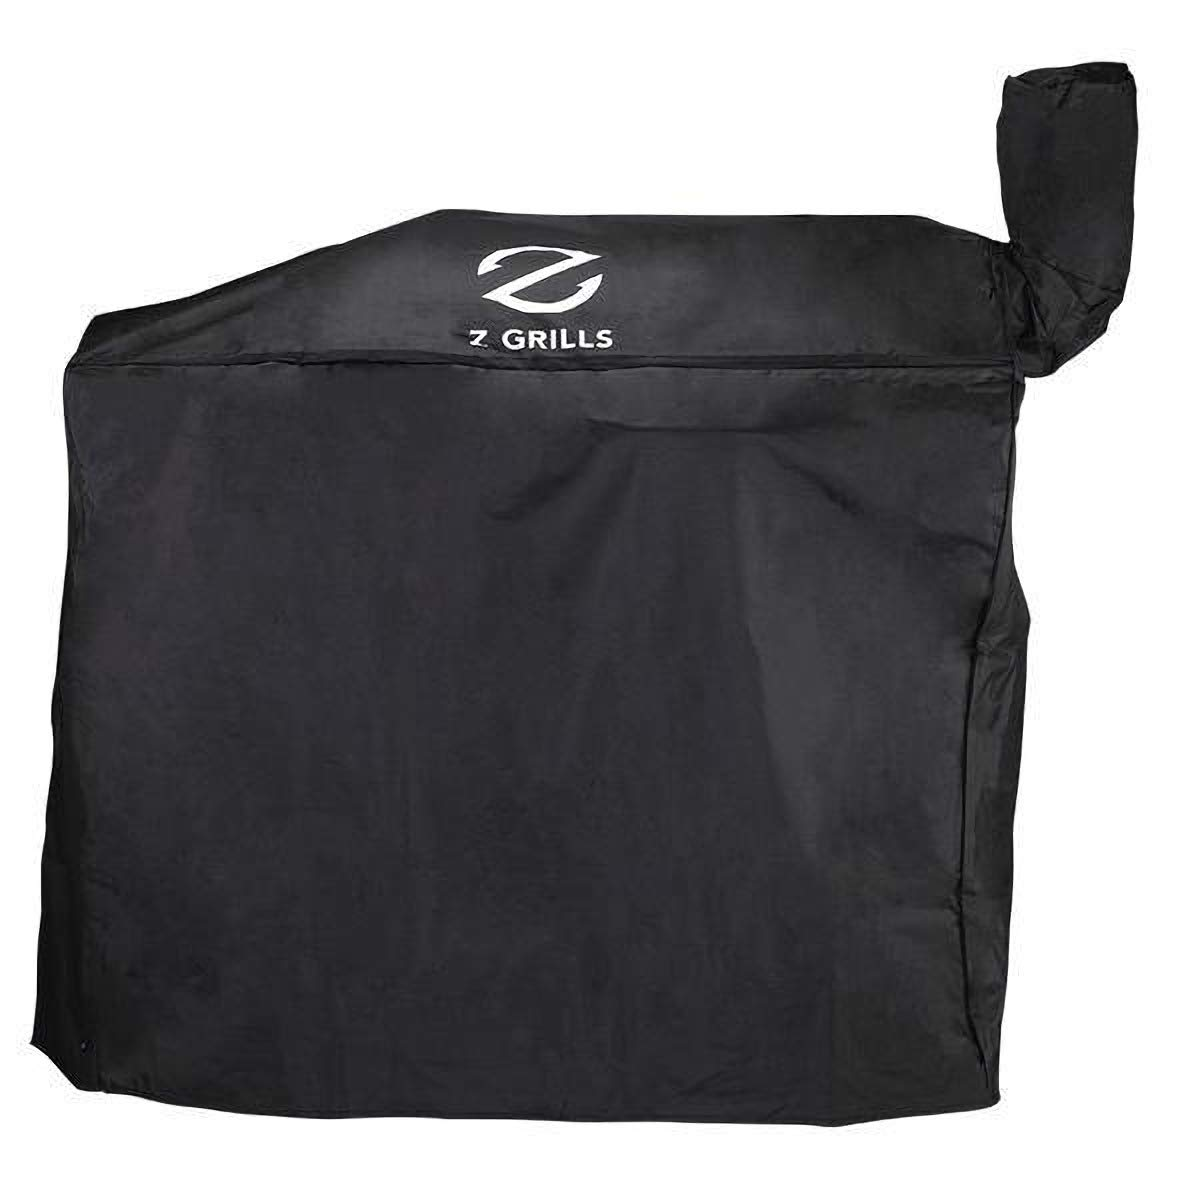 Z GRILLS Heavy Duty Waterproof Barbecue Gas Grill Cover - Special Fade and UV Resistant Material, Durable and Convenient